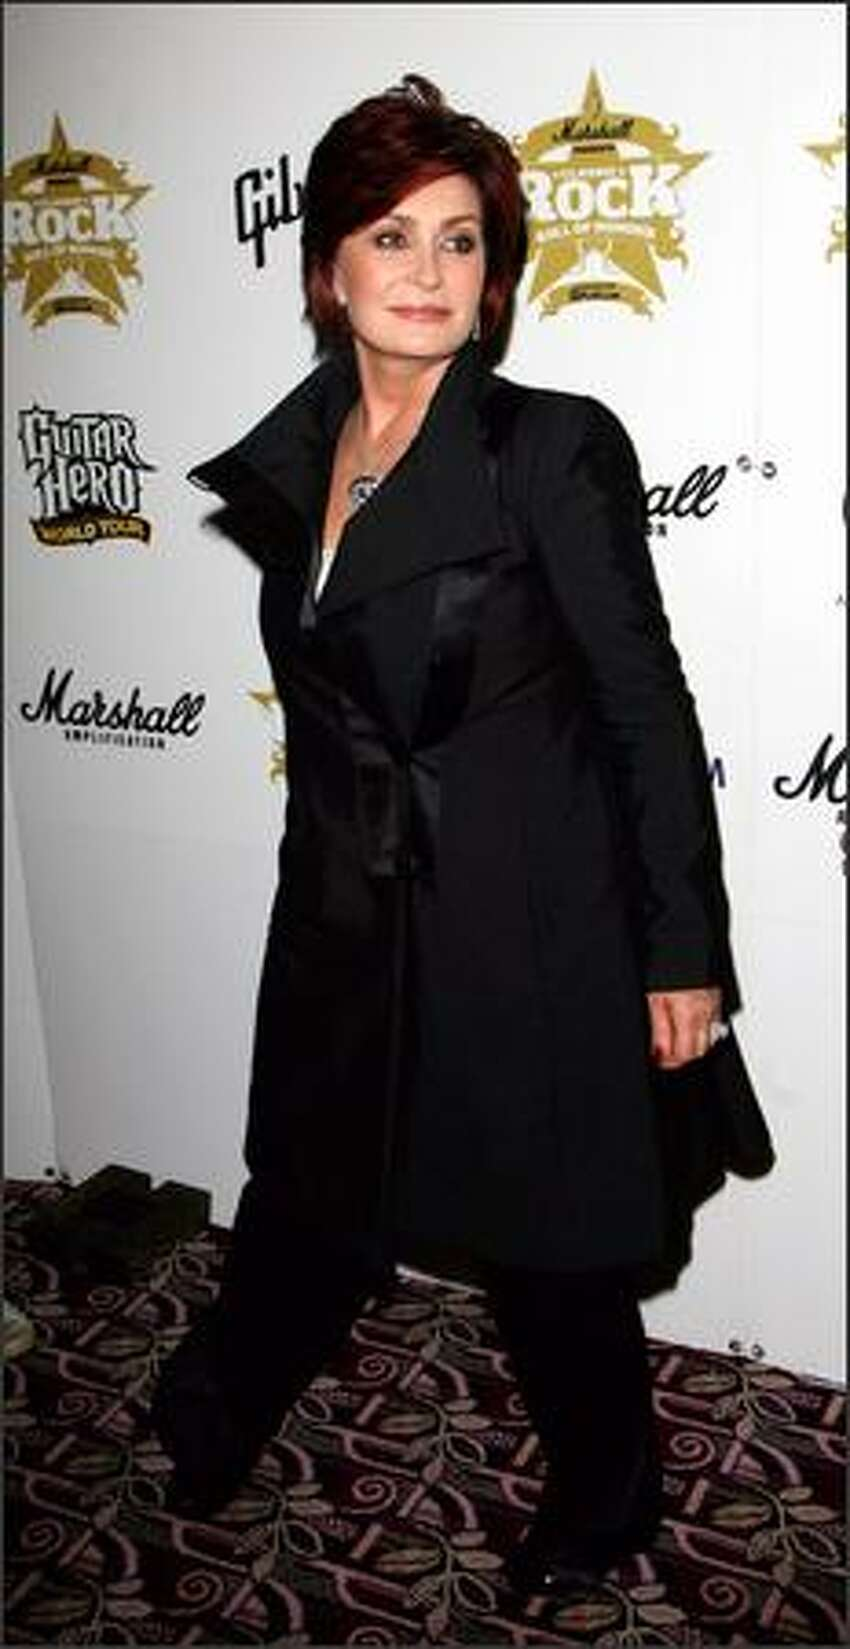 Sharon Osbourne arrives for the Classic Rock Roll of Honour at the Park Lane Hotel on Monday in London.